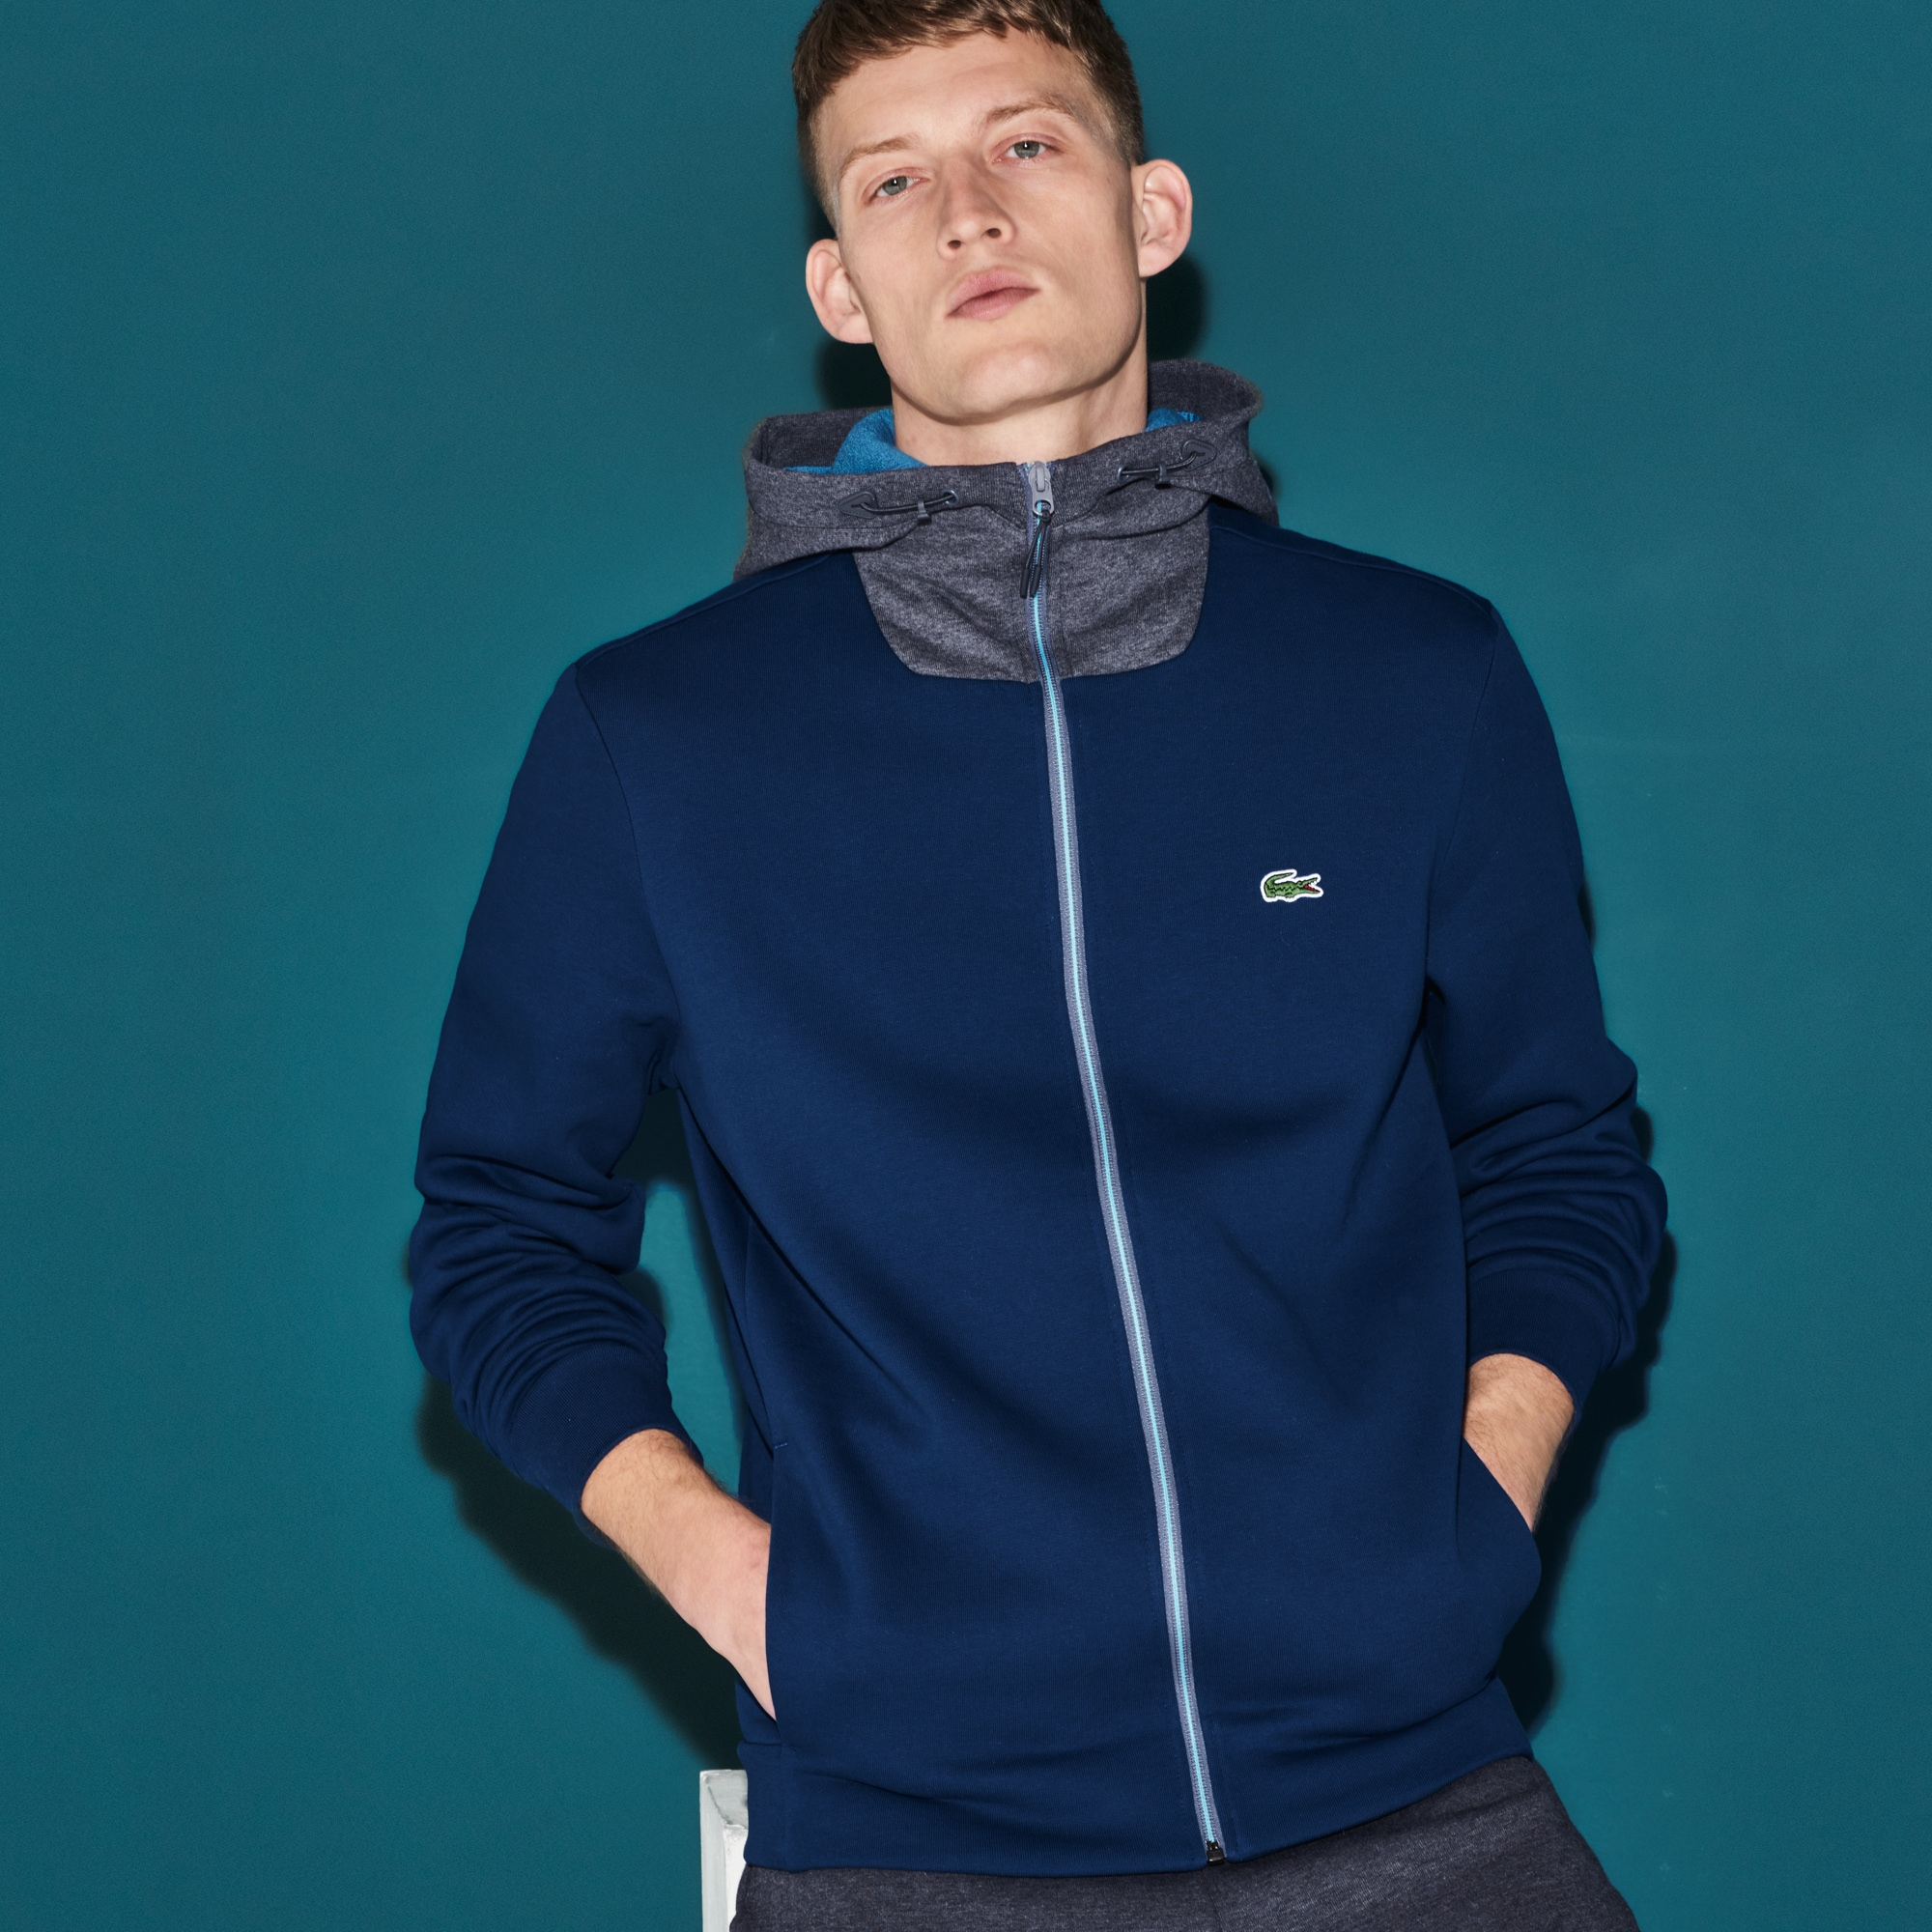 Men's SPORT Hooded Tennis Sweatshirt